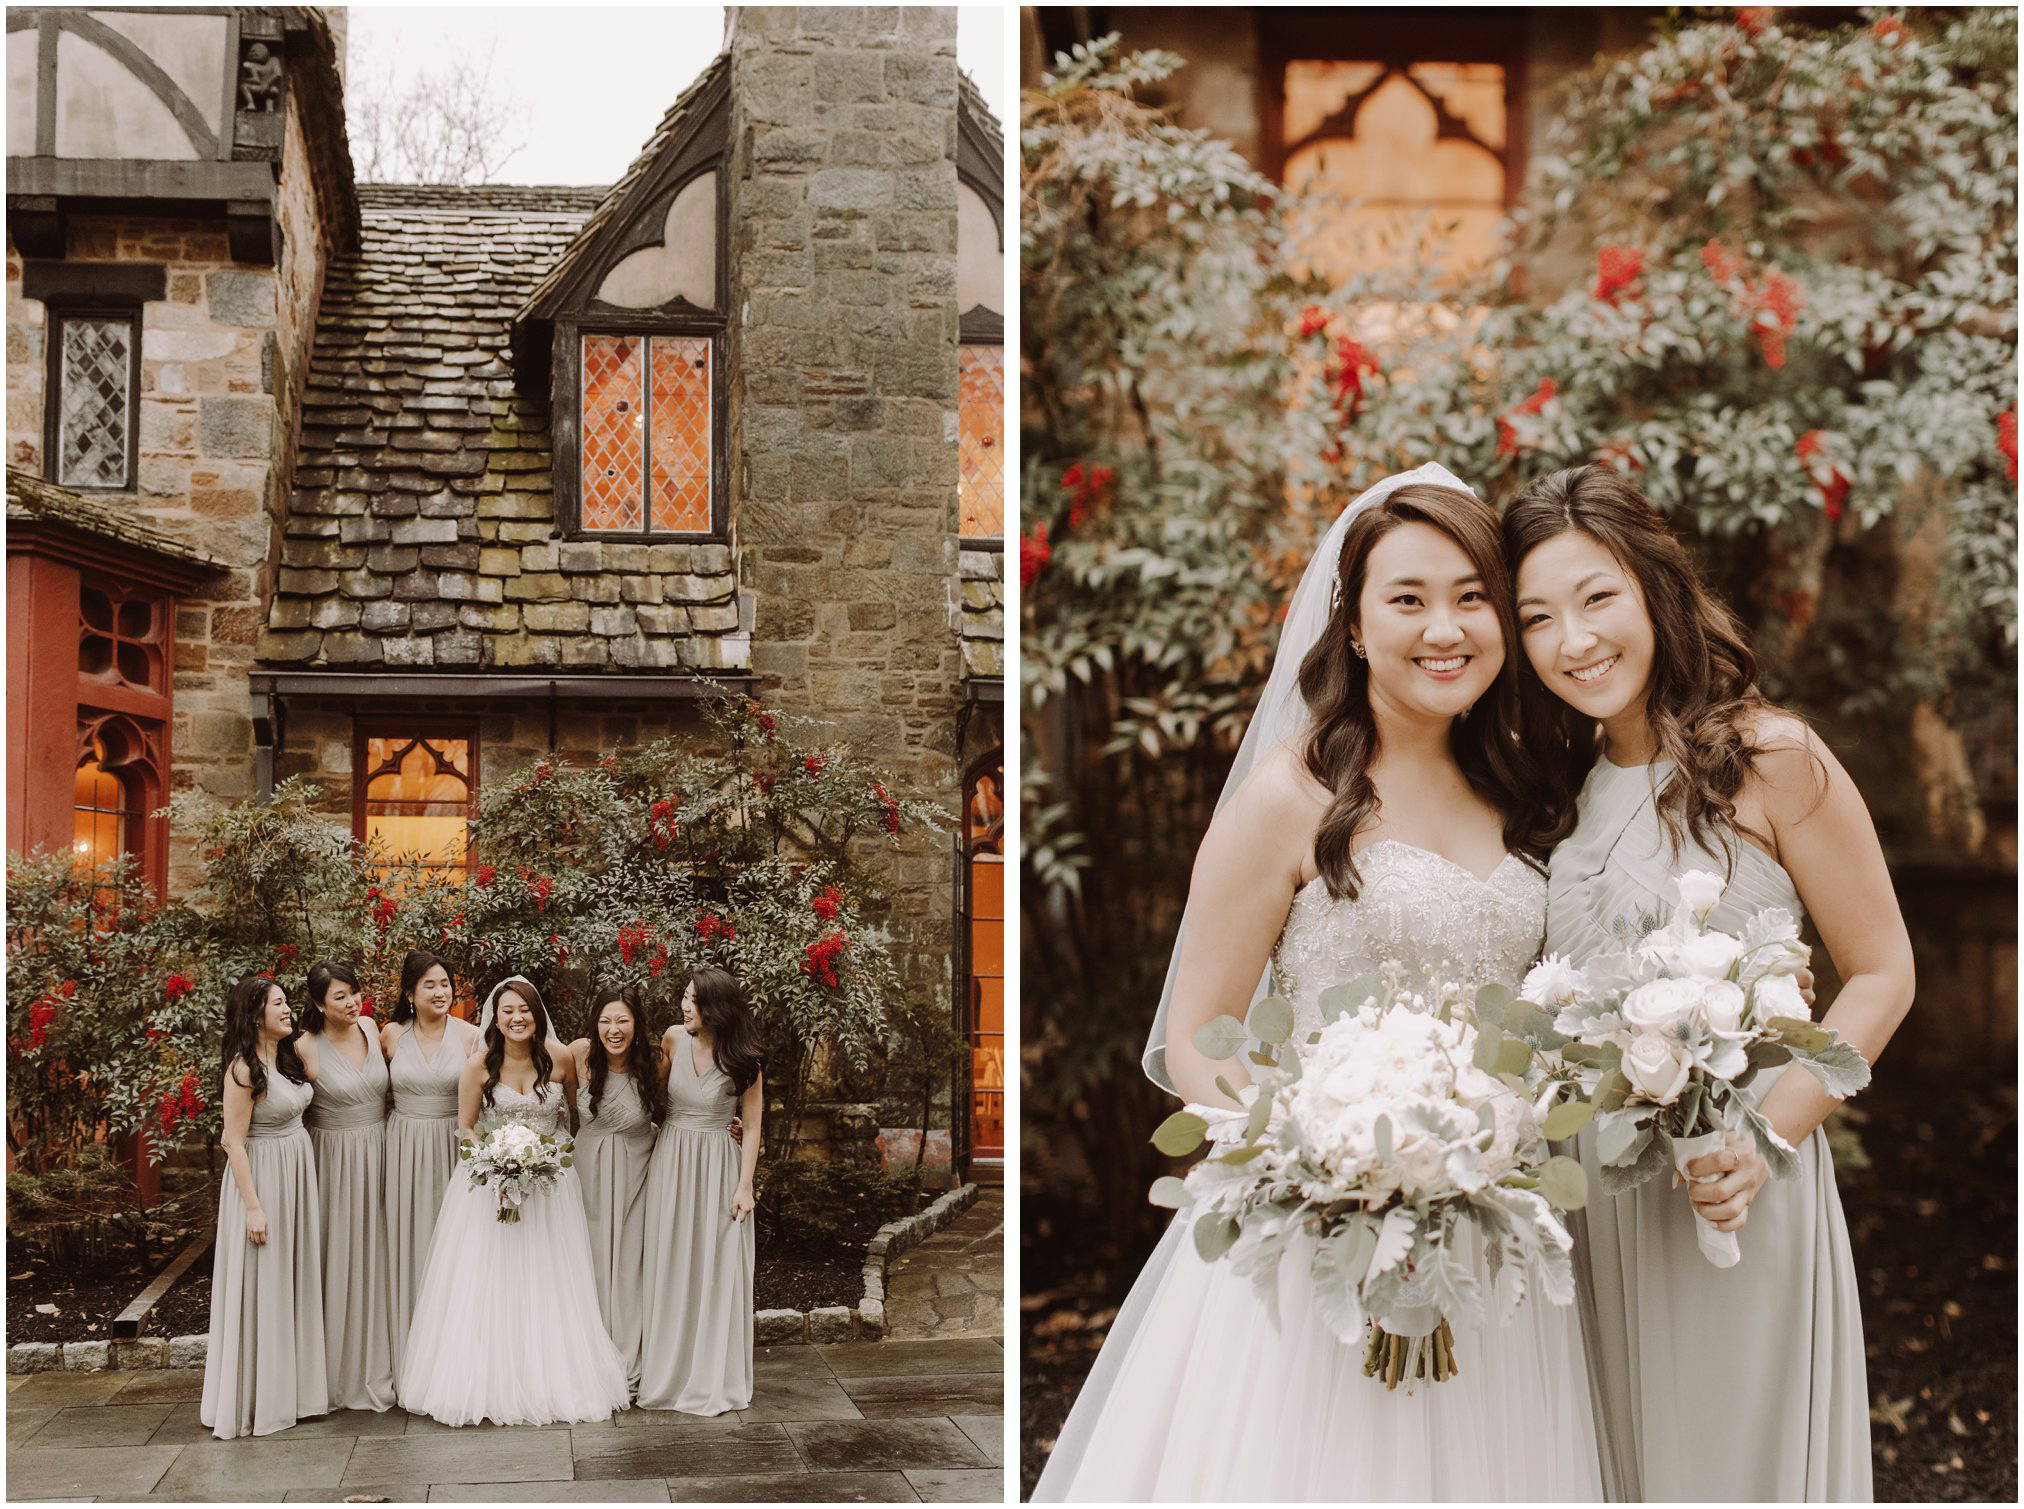 Bridesmaids Pictures at Cloisters Castle